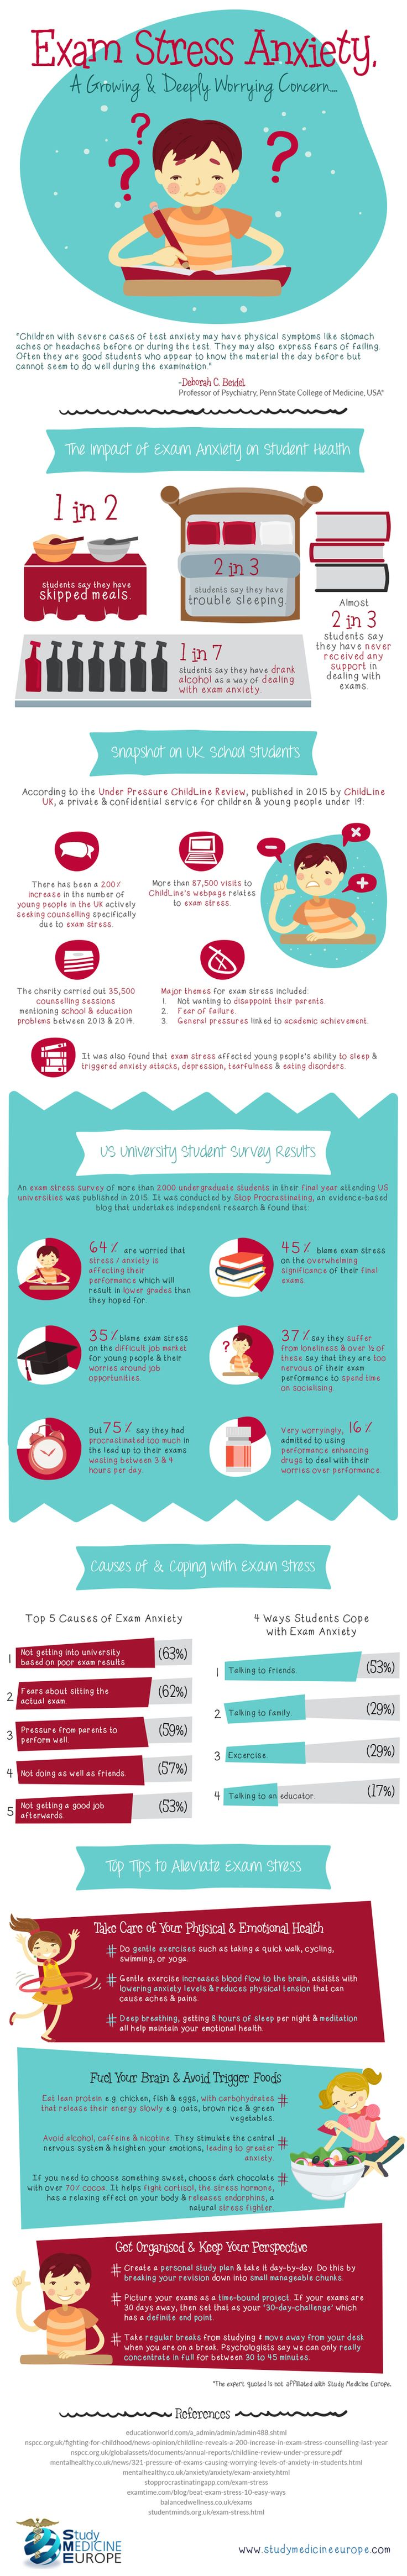 best student exam ideas college study tips get stress is a serious threat for students the how to cope stress during exams